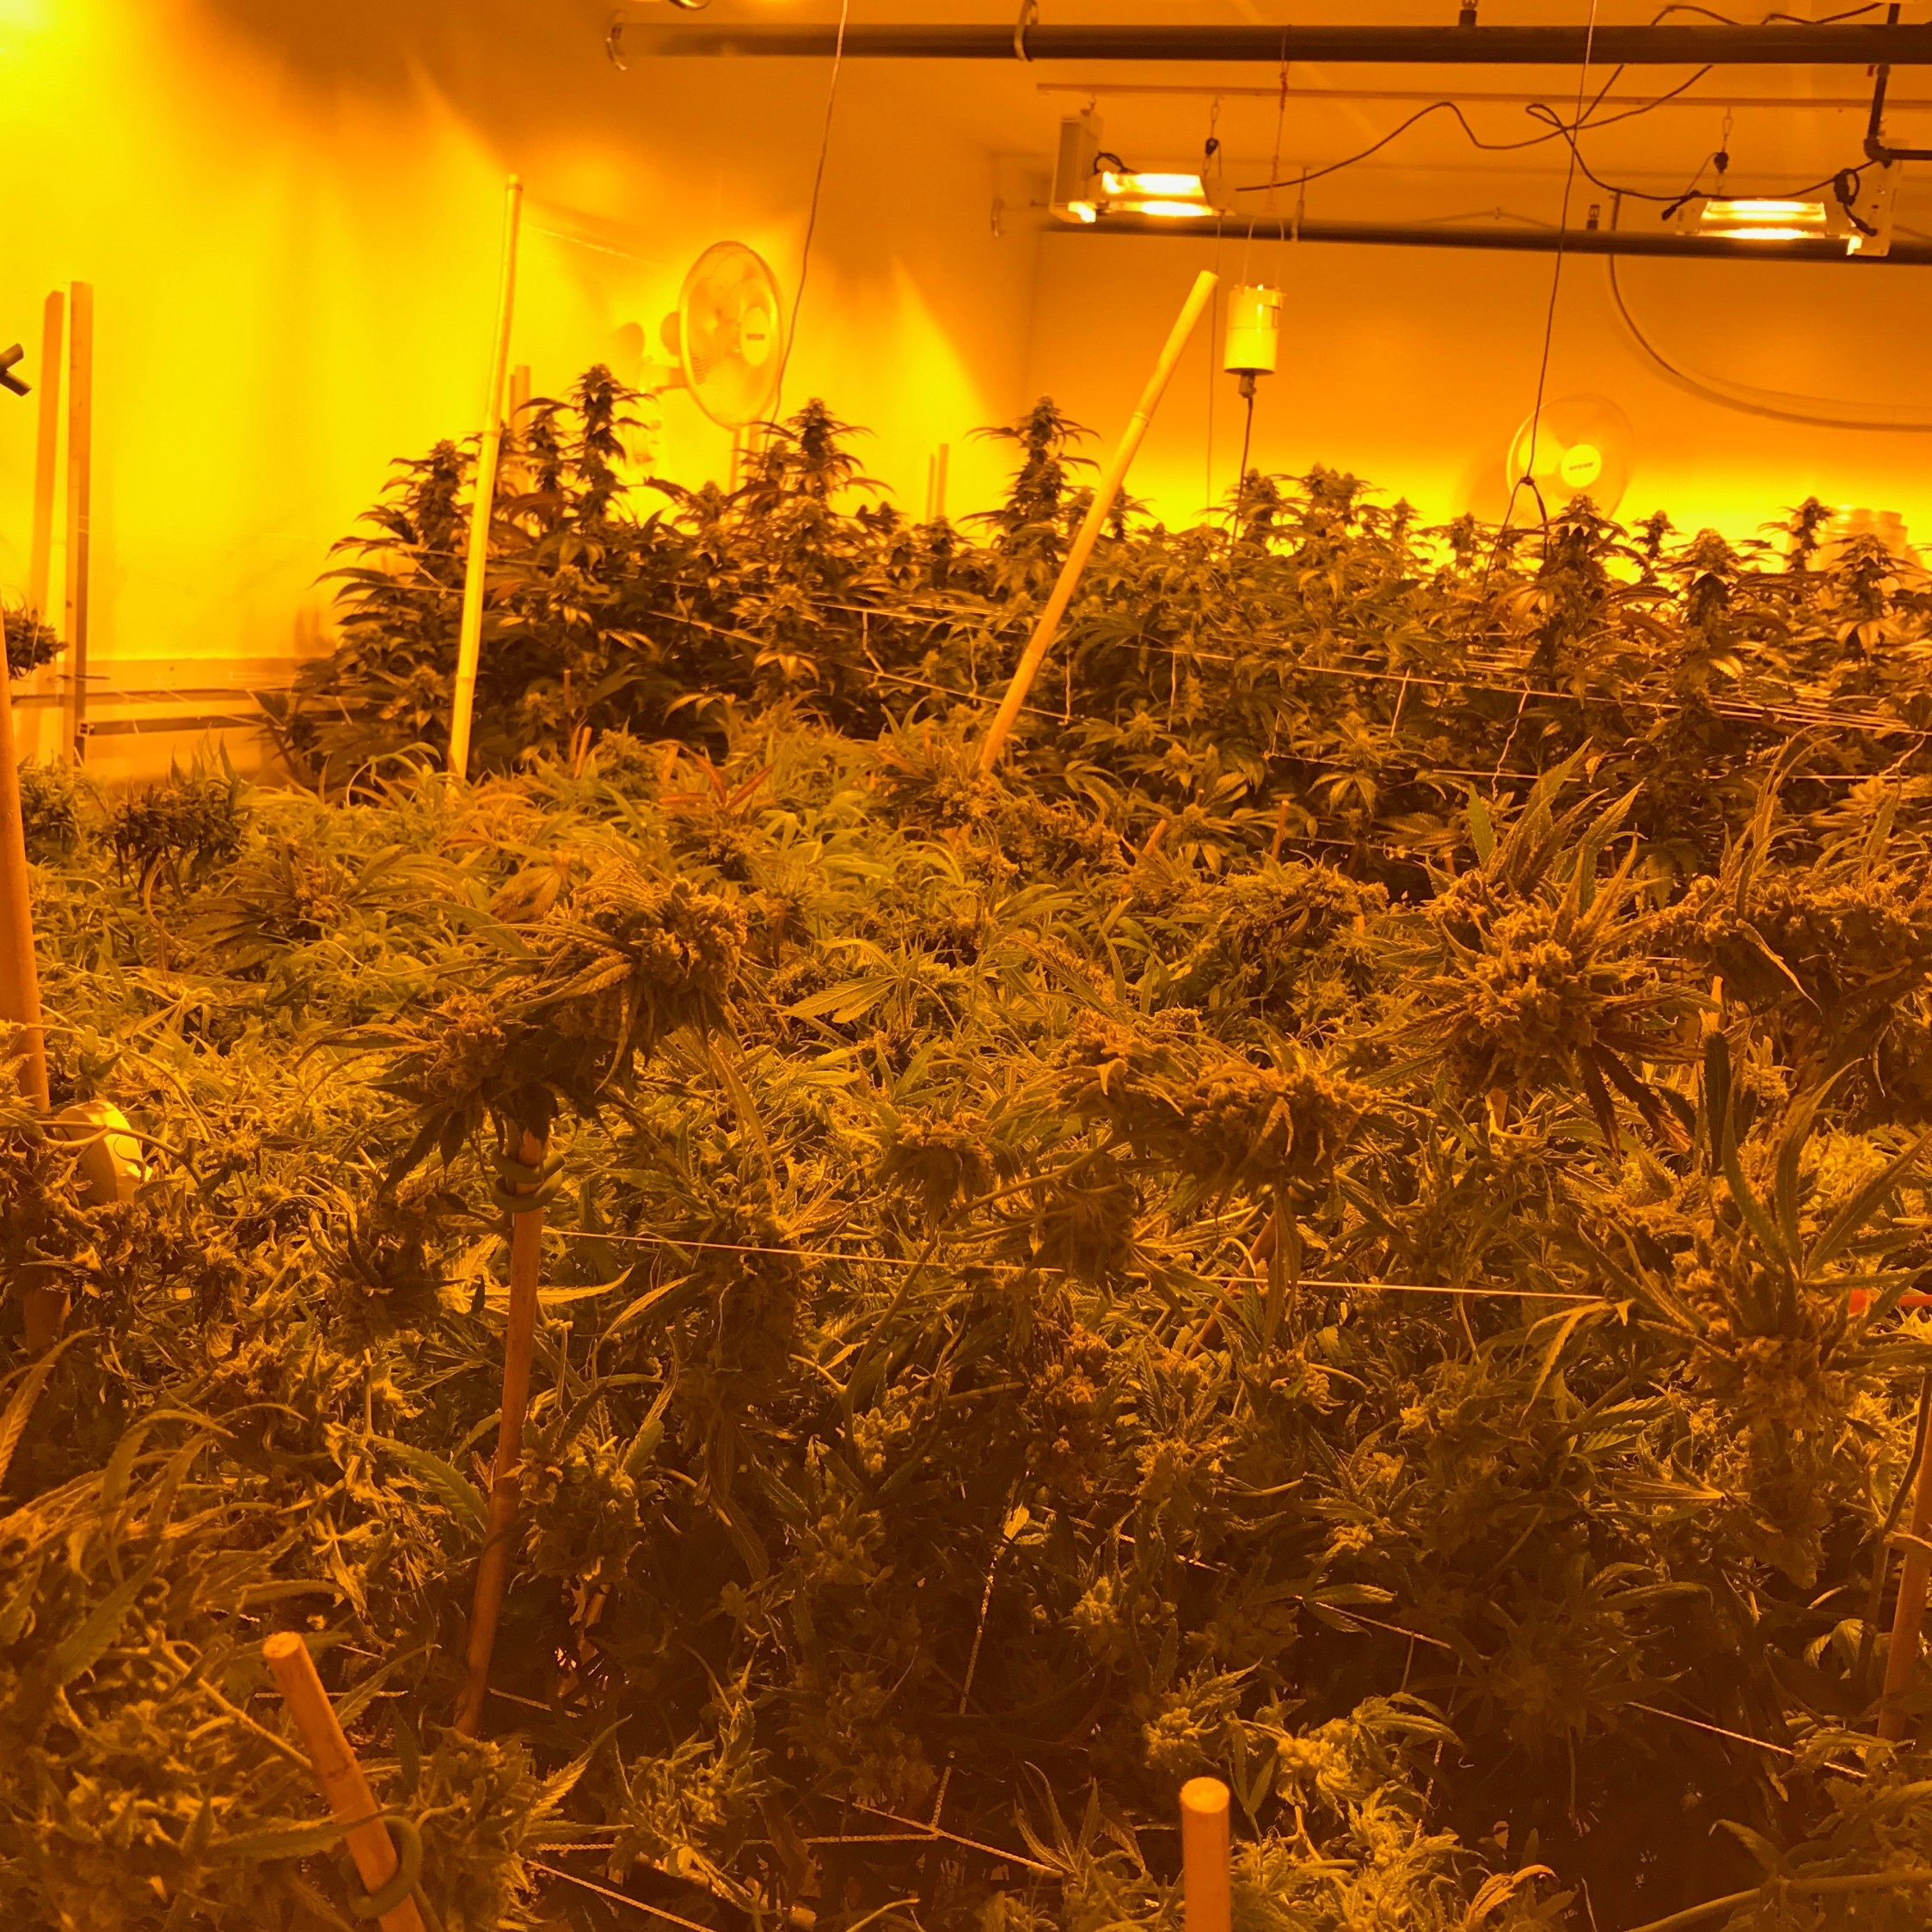 Lighting in a PermaTherm Cannabis Grow Room